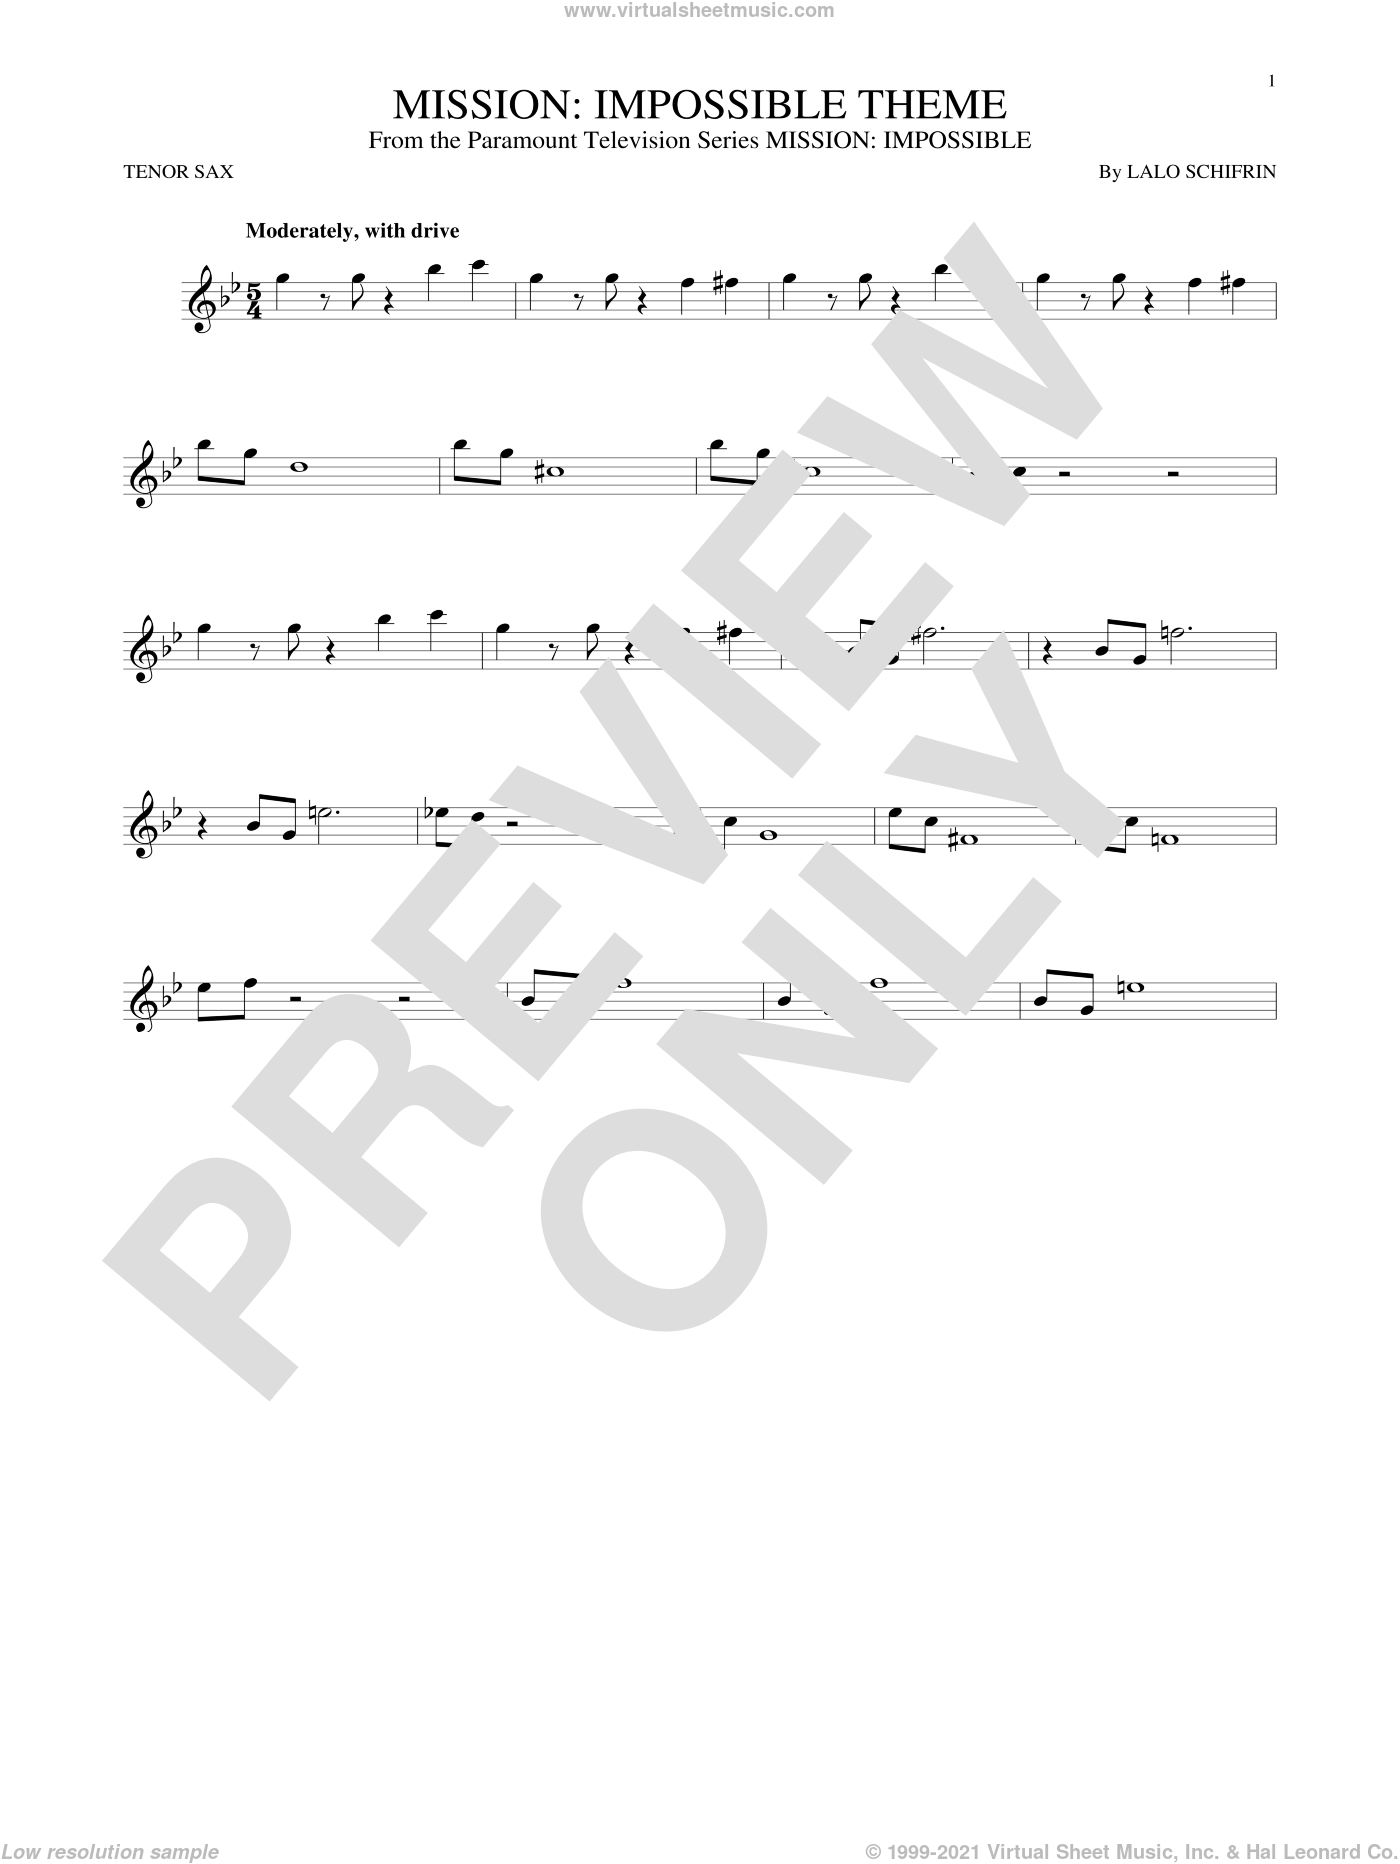 Mission: Impossible Theme sheet music for tenor saxophone solo by Lalo Schifrin